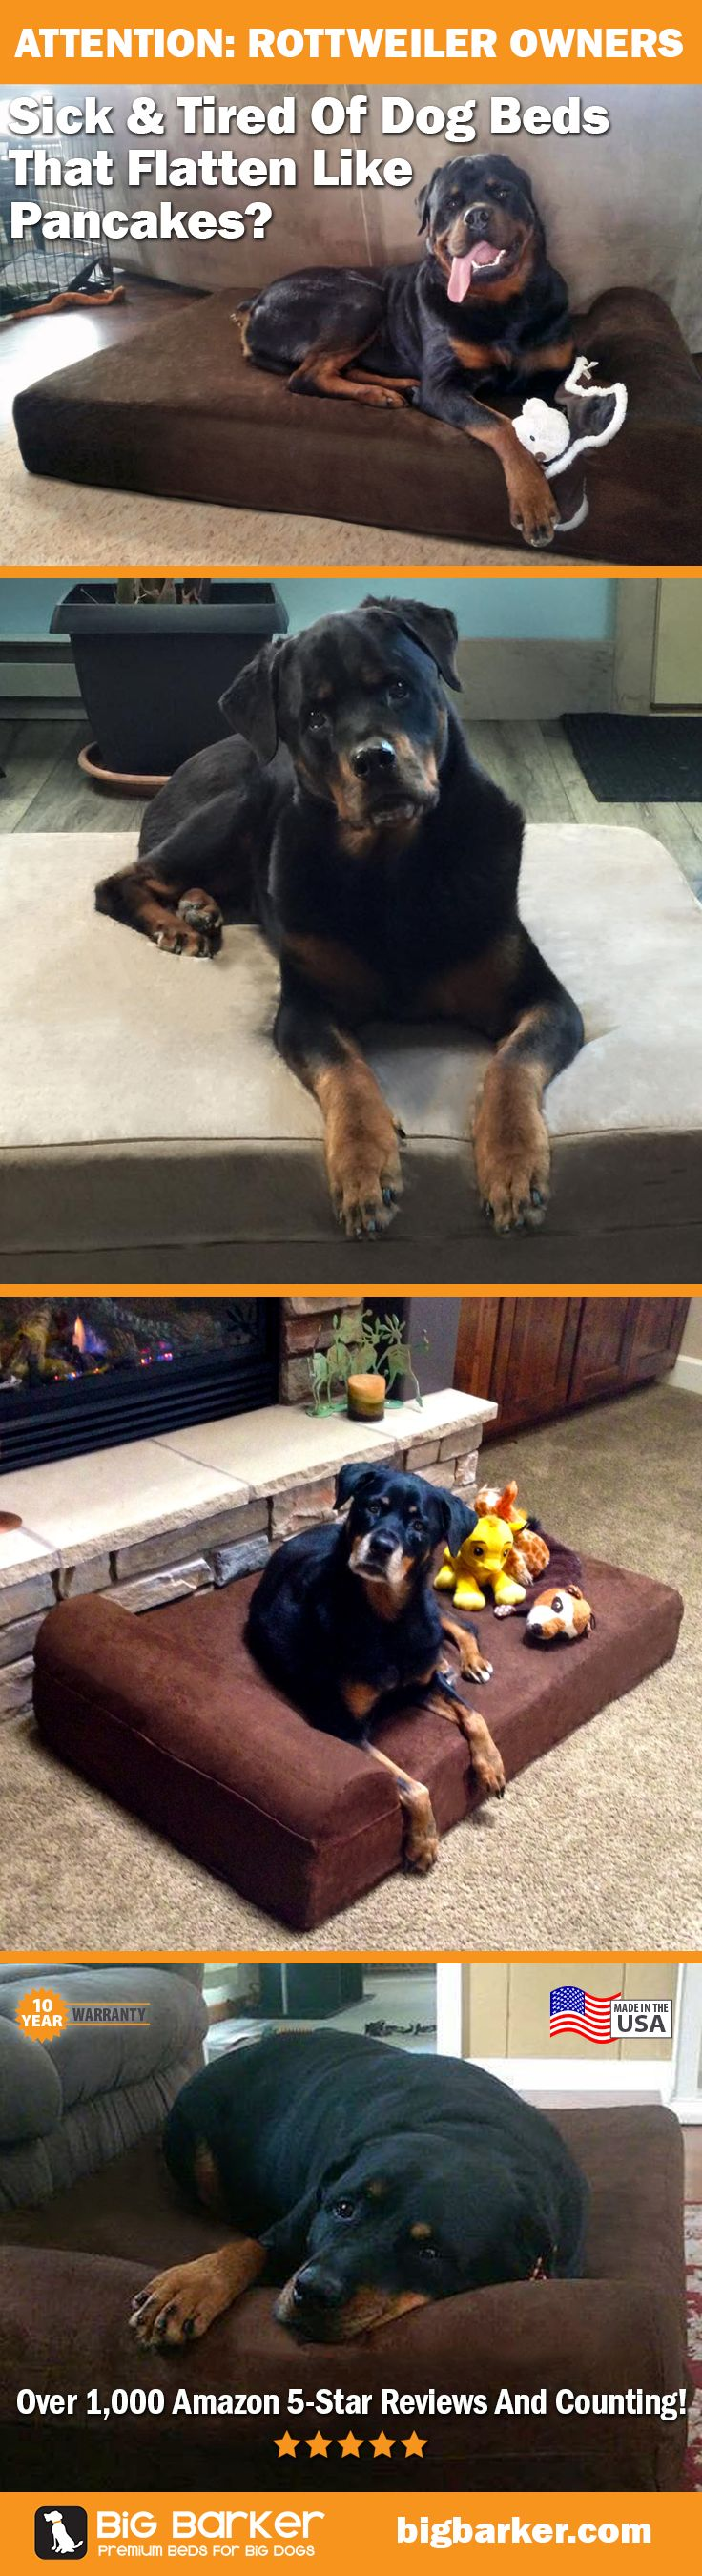 Rottweiler dog beds by Big Barker... America's most luxurious dog bed for big dogs like Rottweilers | See more pictures at http://bigbarker.com